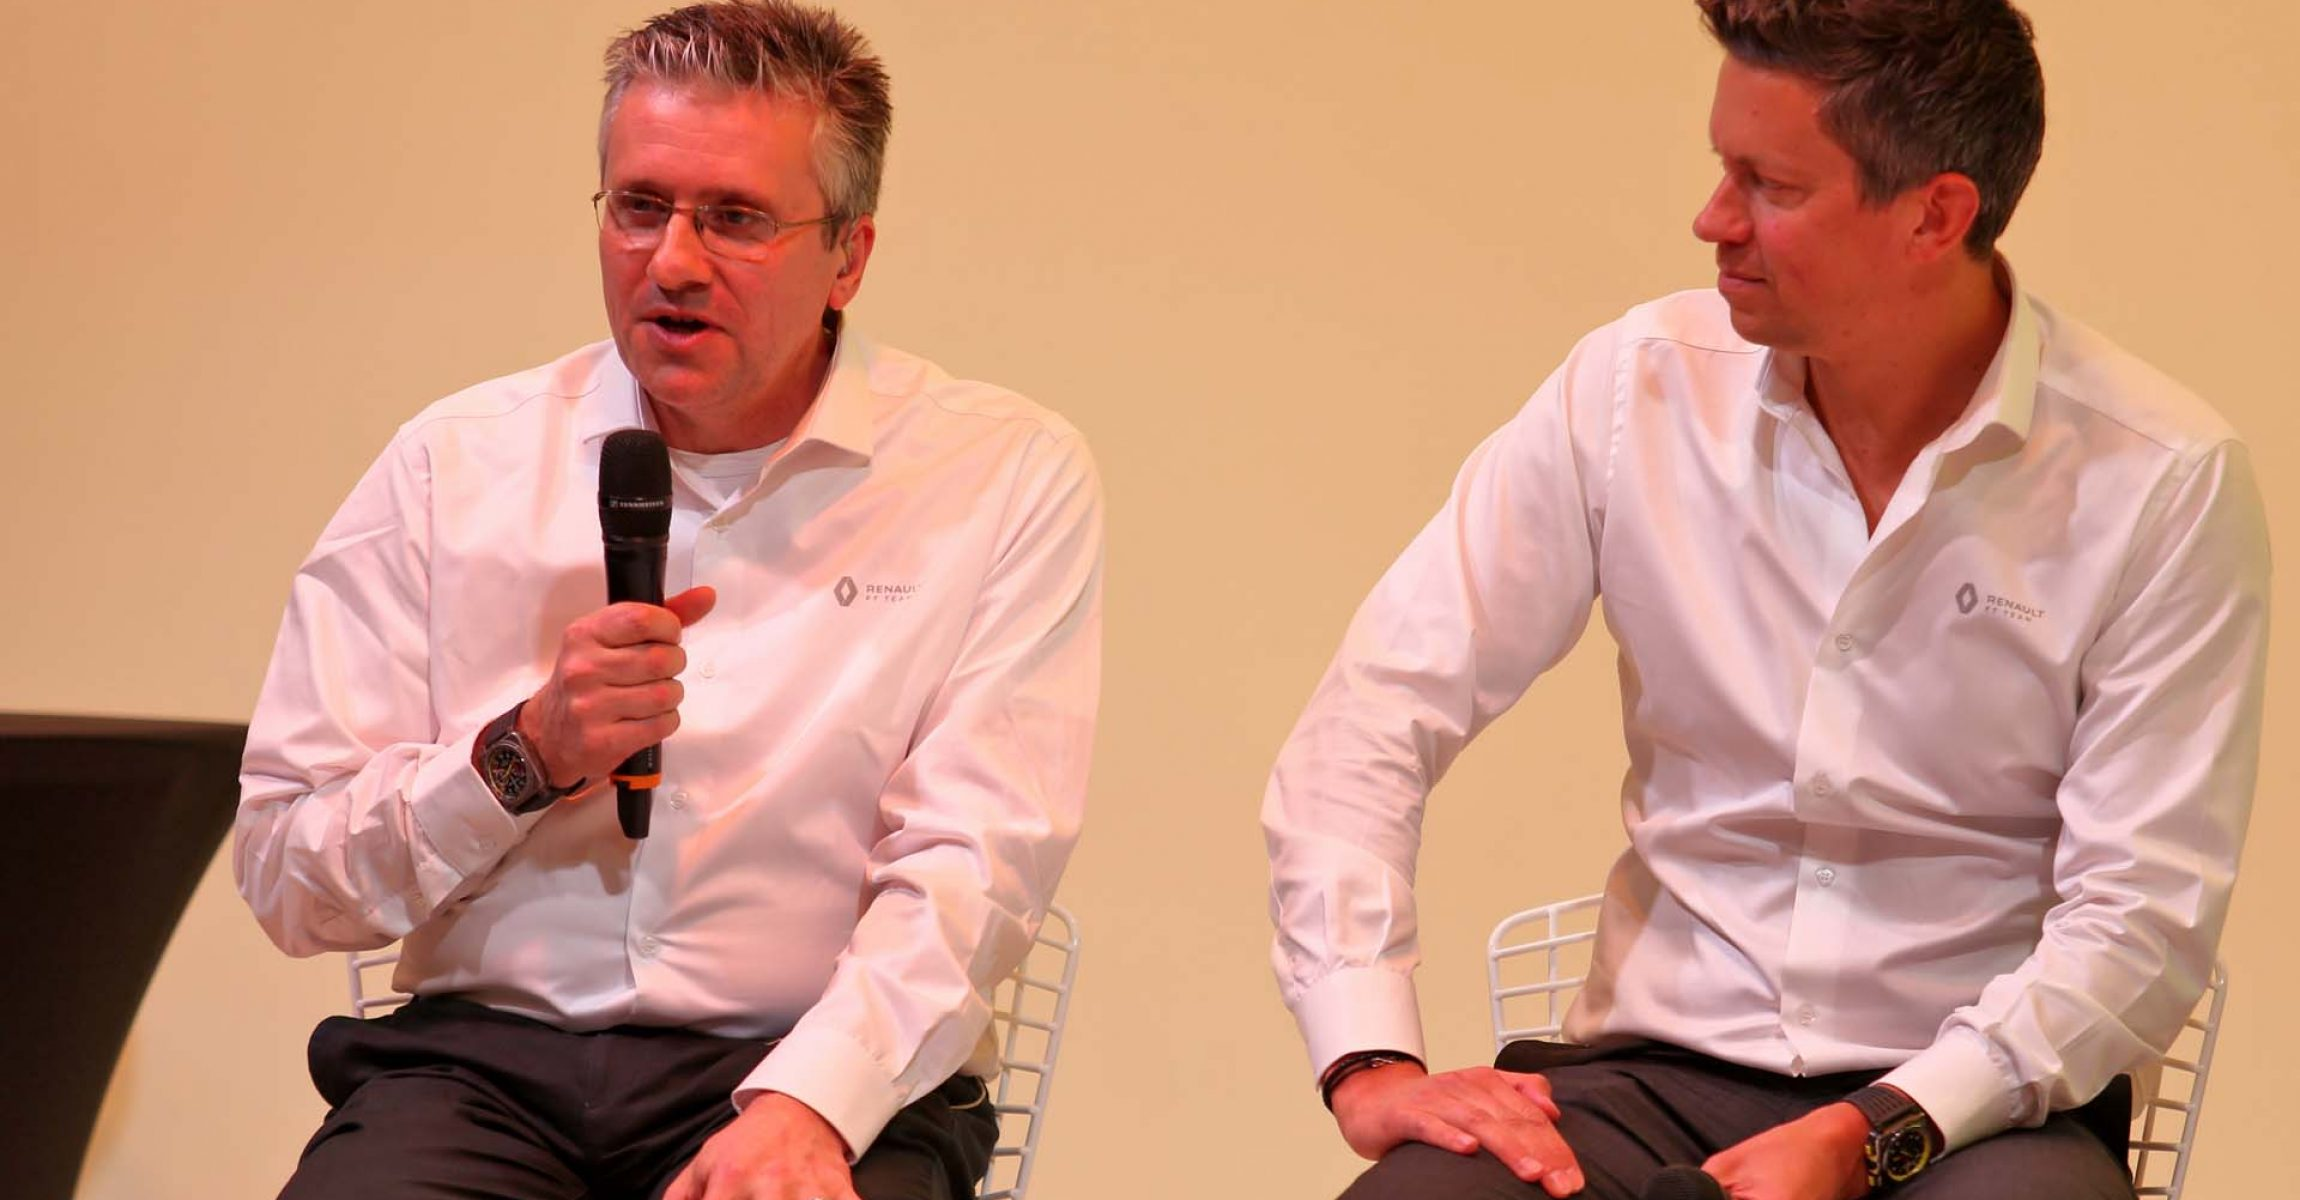 (L to R): Pat Fry (GBR) Renault F1 Team Technical Director (Chassis) with Marcin Budkowski (POL) Renault F1 Team Executive Director. Renault F1 Team Season Opener, Wednesday 12th February 2020. L'Atelier Renault, Paris, France.